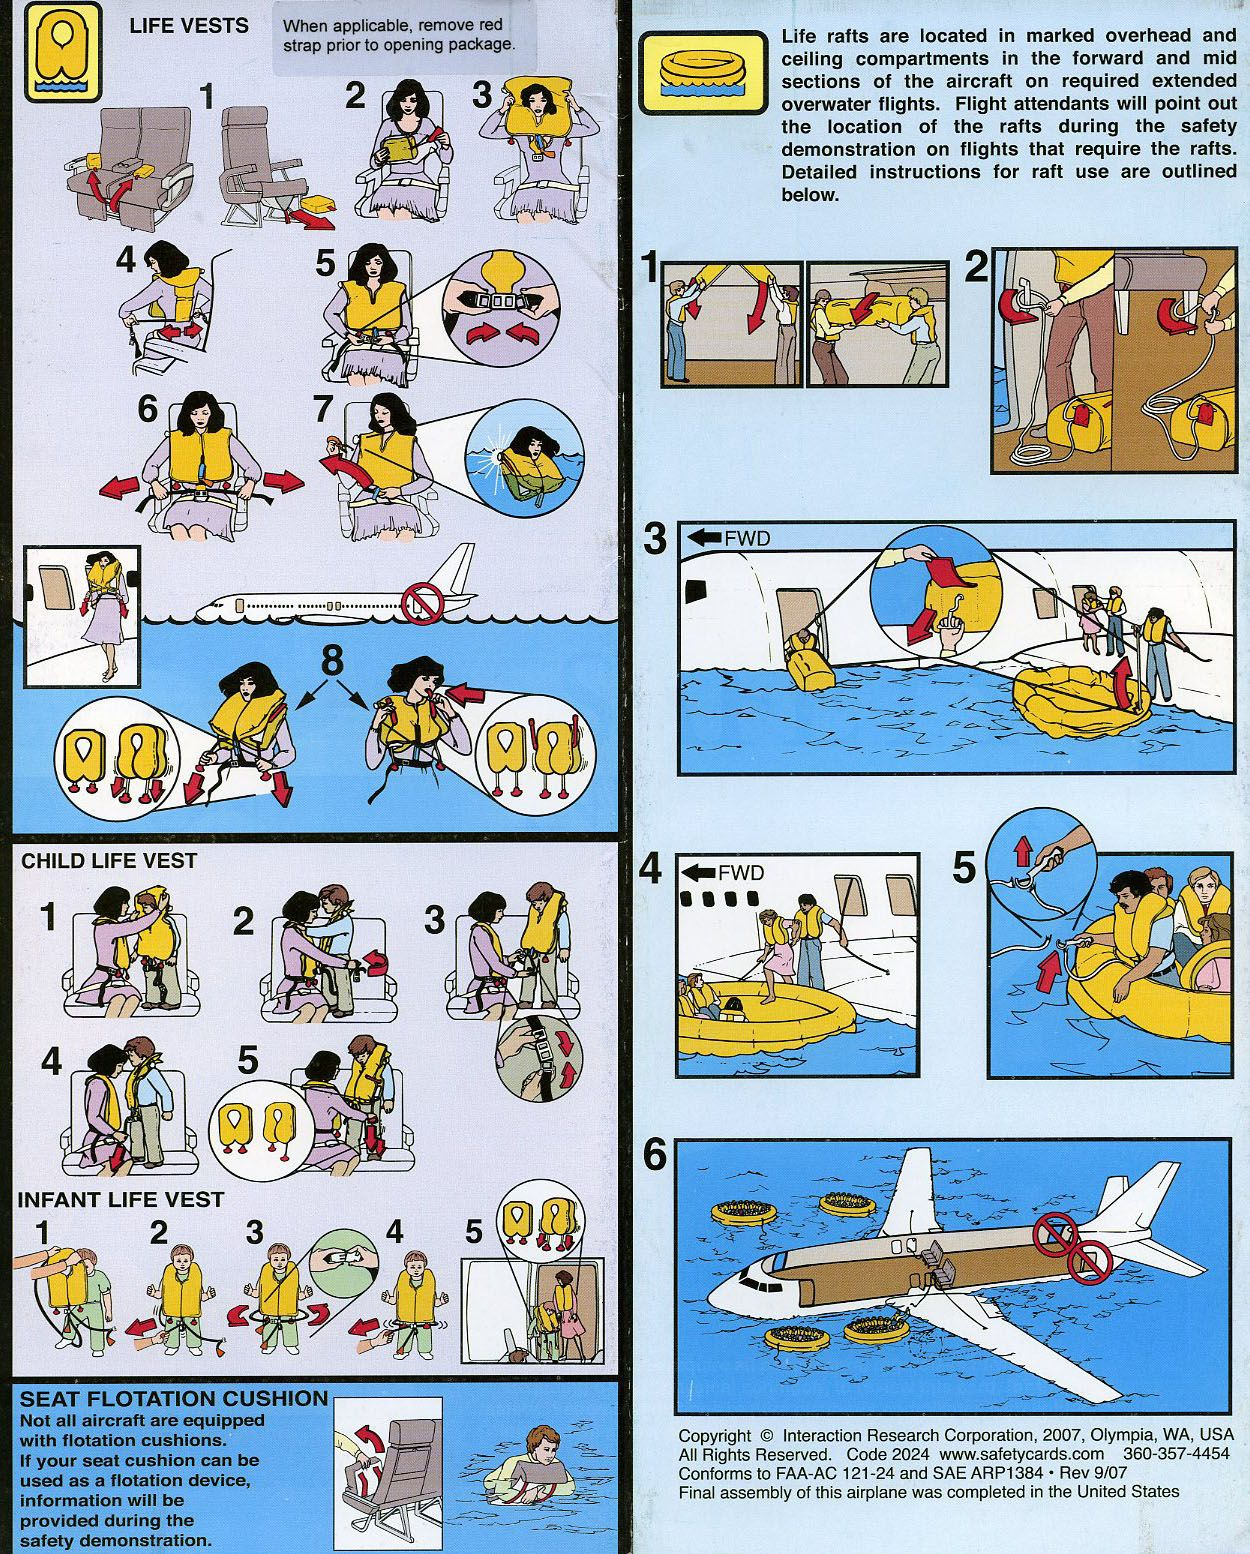 passengersafetyinformation1.jpg (1250×1554) Airplane